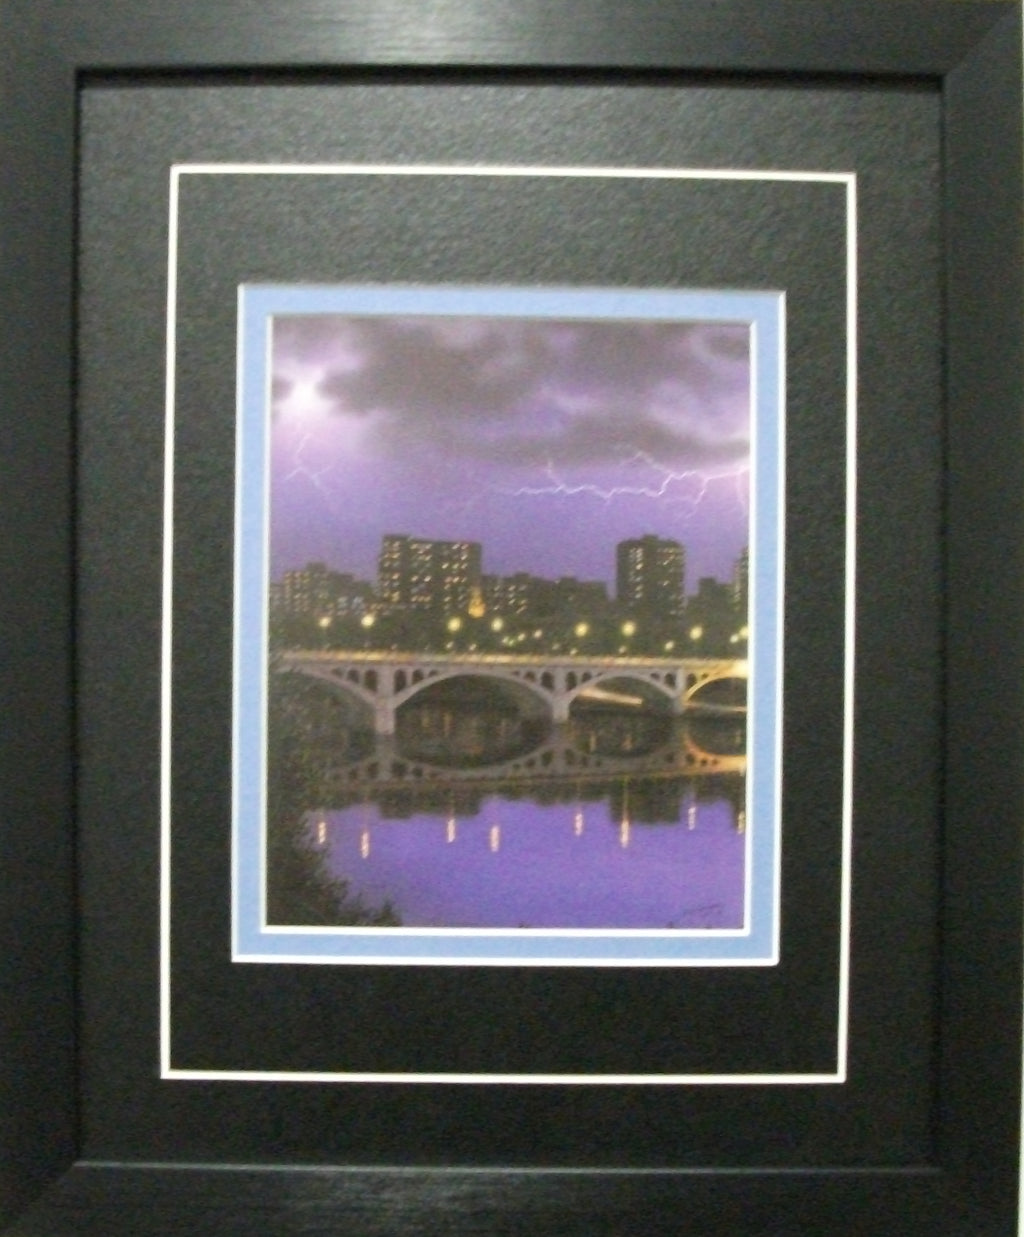 Saskatoon City of Bridges by Glen Scrimshaw